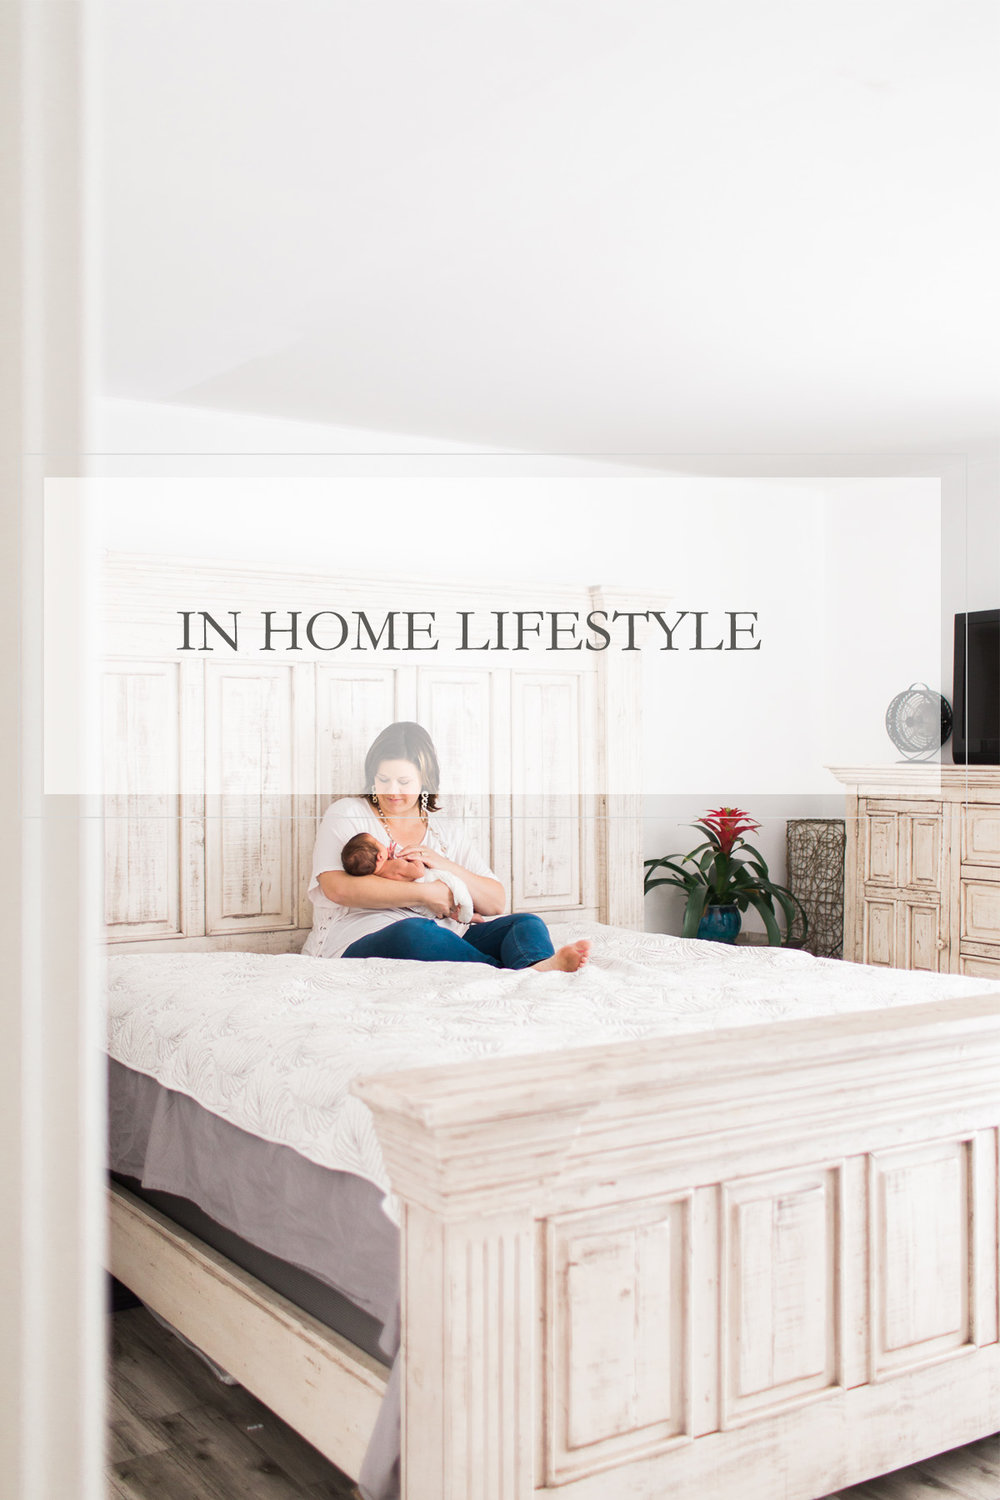 LIFESTYLE    VIEW THE GALLERY